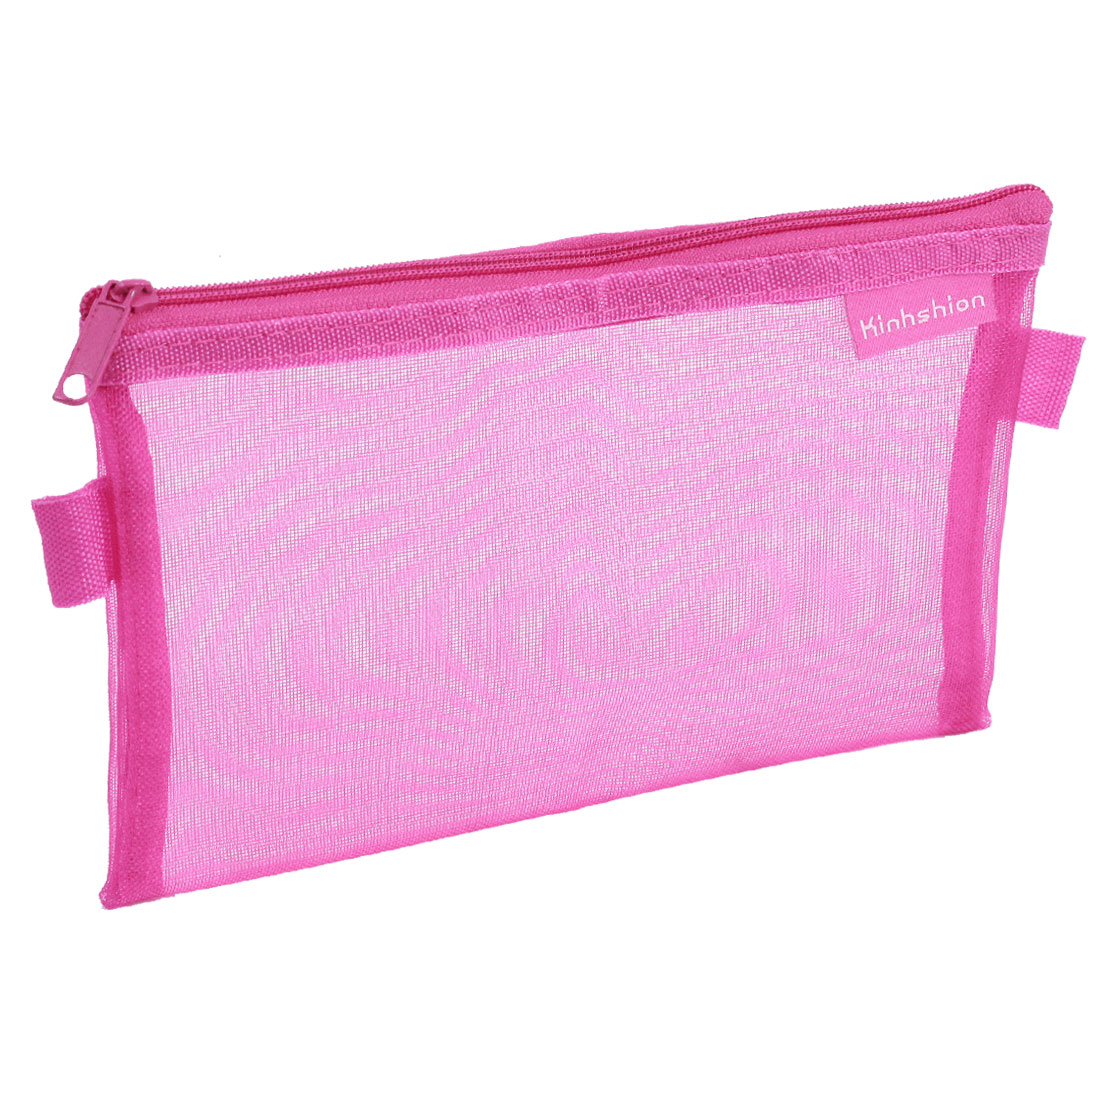 Students Zip up Nylon Mesh Pencil Pen Stationary Holder Case Bag Fuchsia